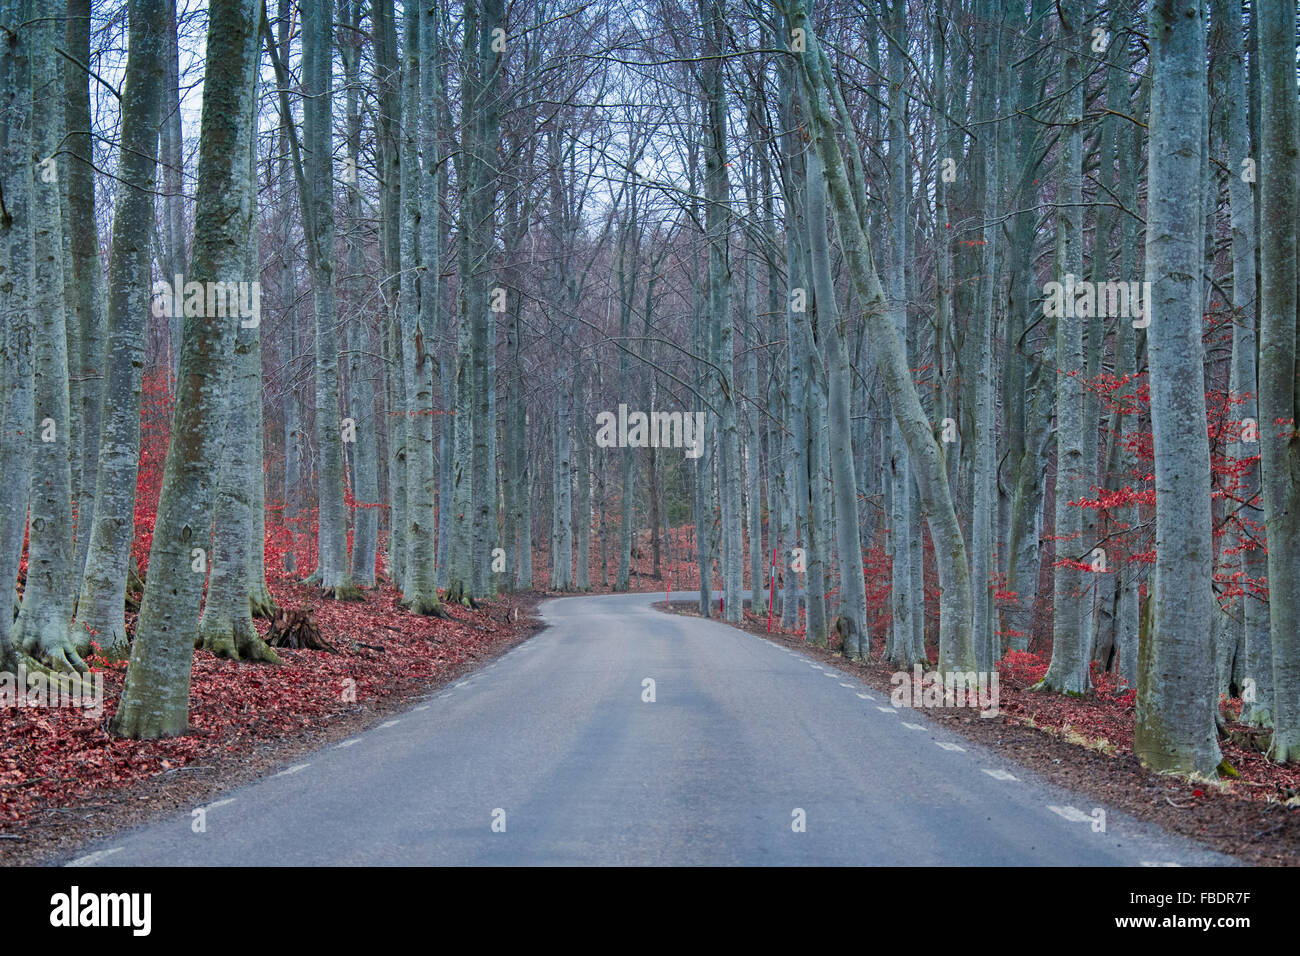 View Of Road Amidst Trees In Forest Stock Photo